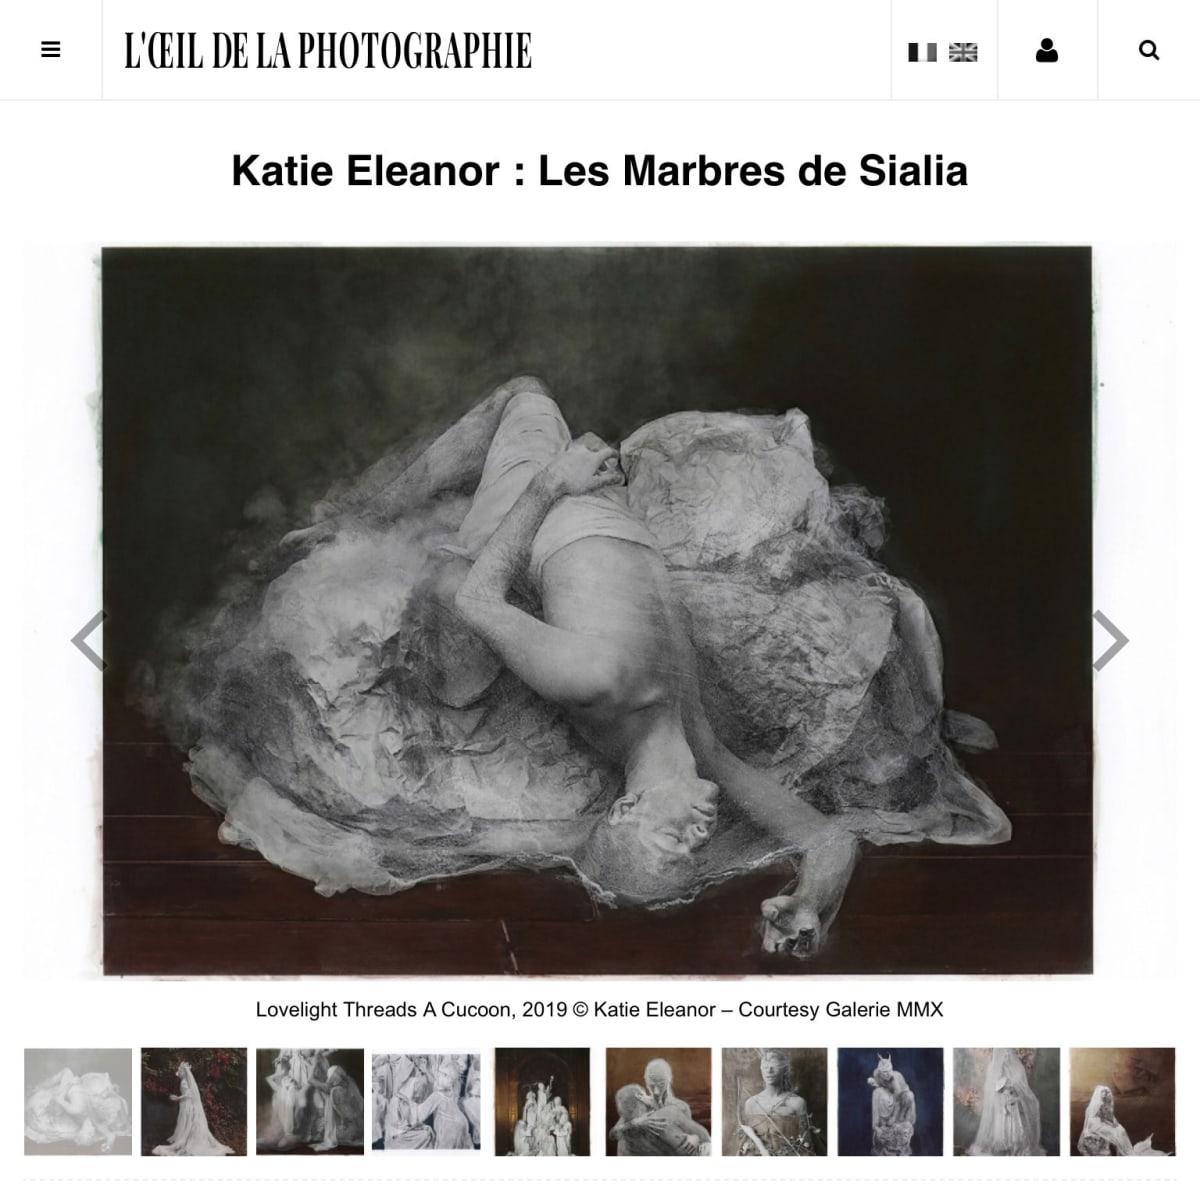 Katie Eleanor: The Sialia Marbles